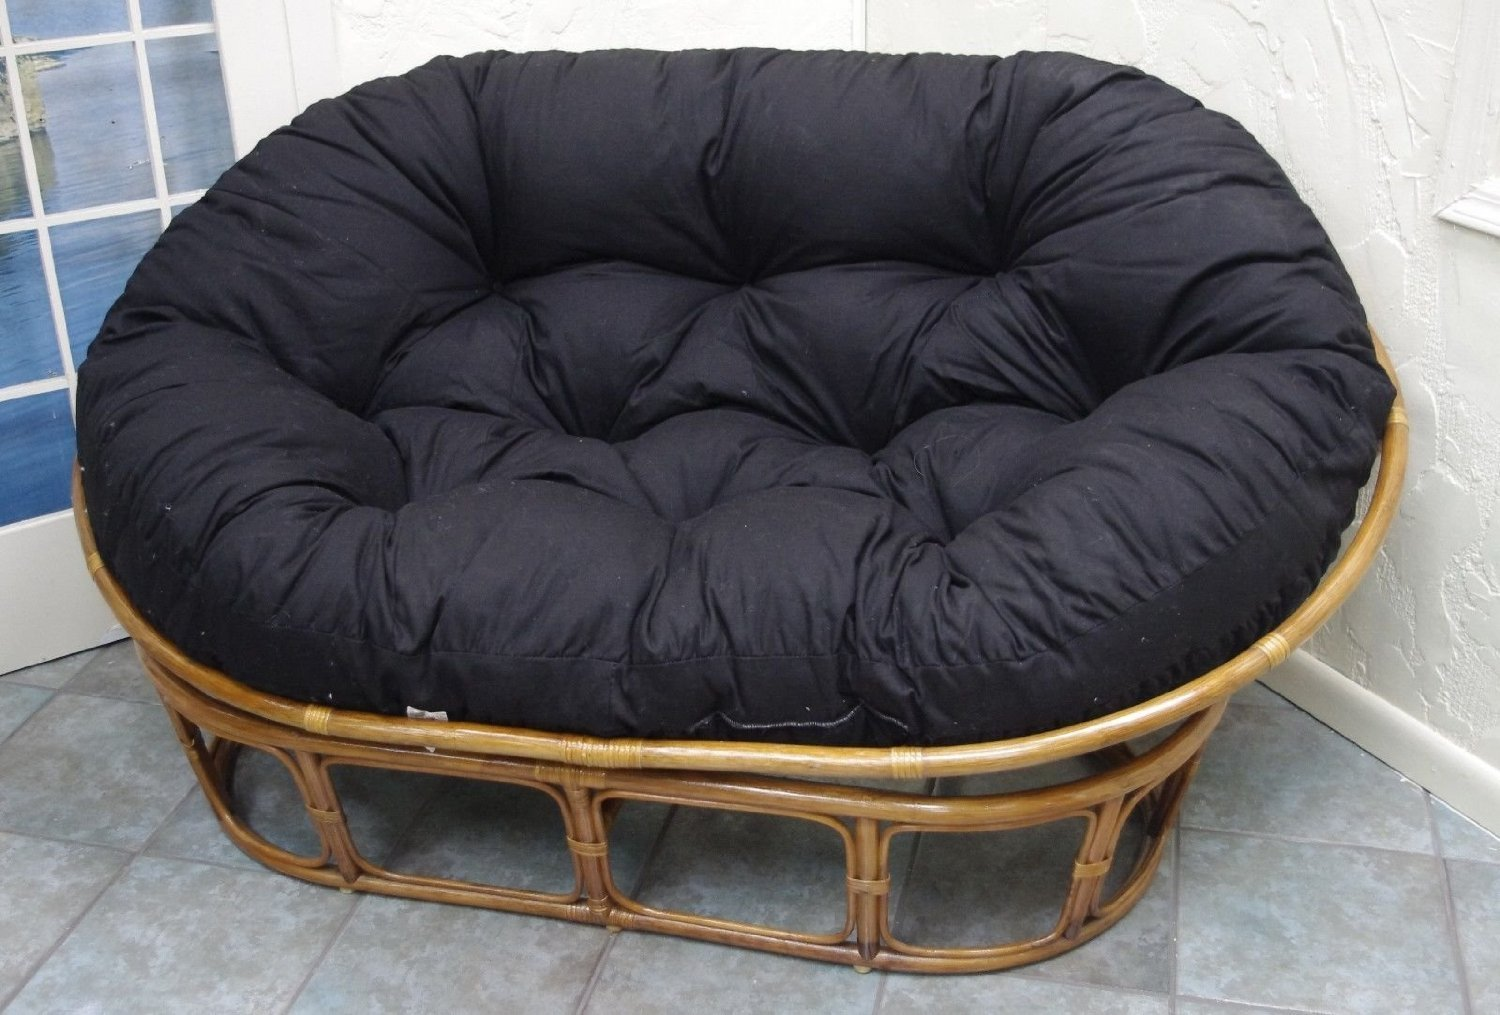 charming black rattan outdoor papasan chair with cushion seat in black nuance for charming furniture ideas